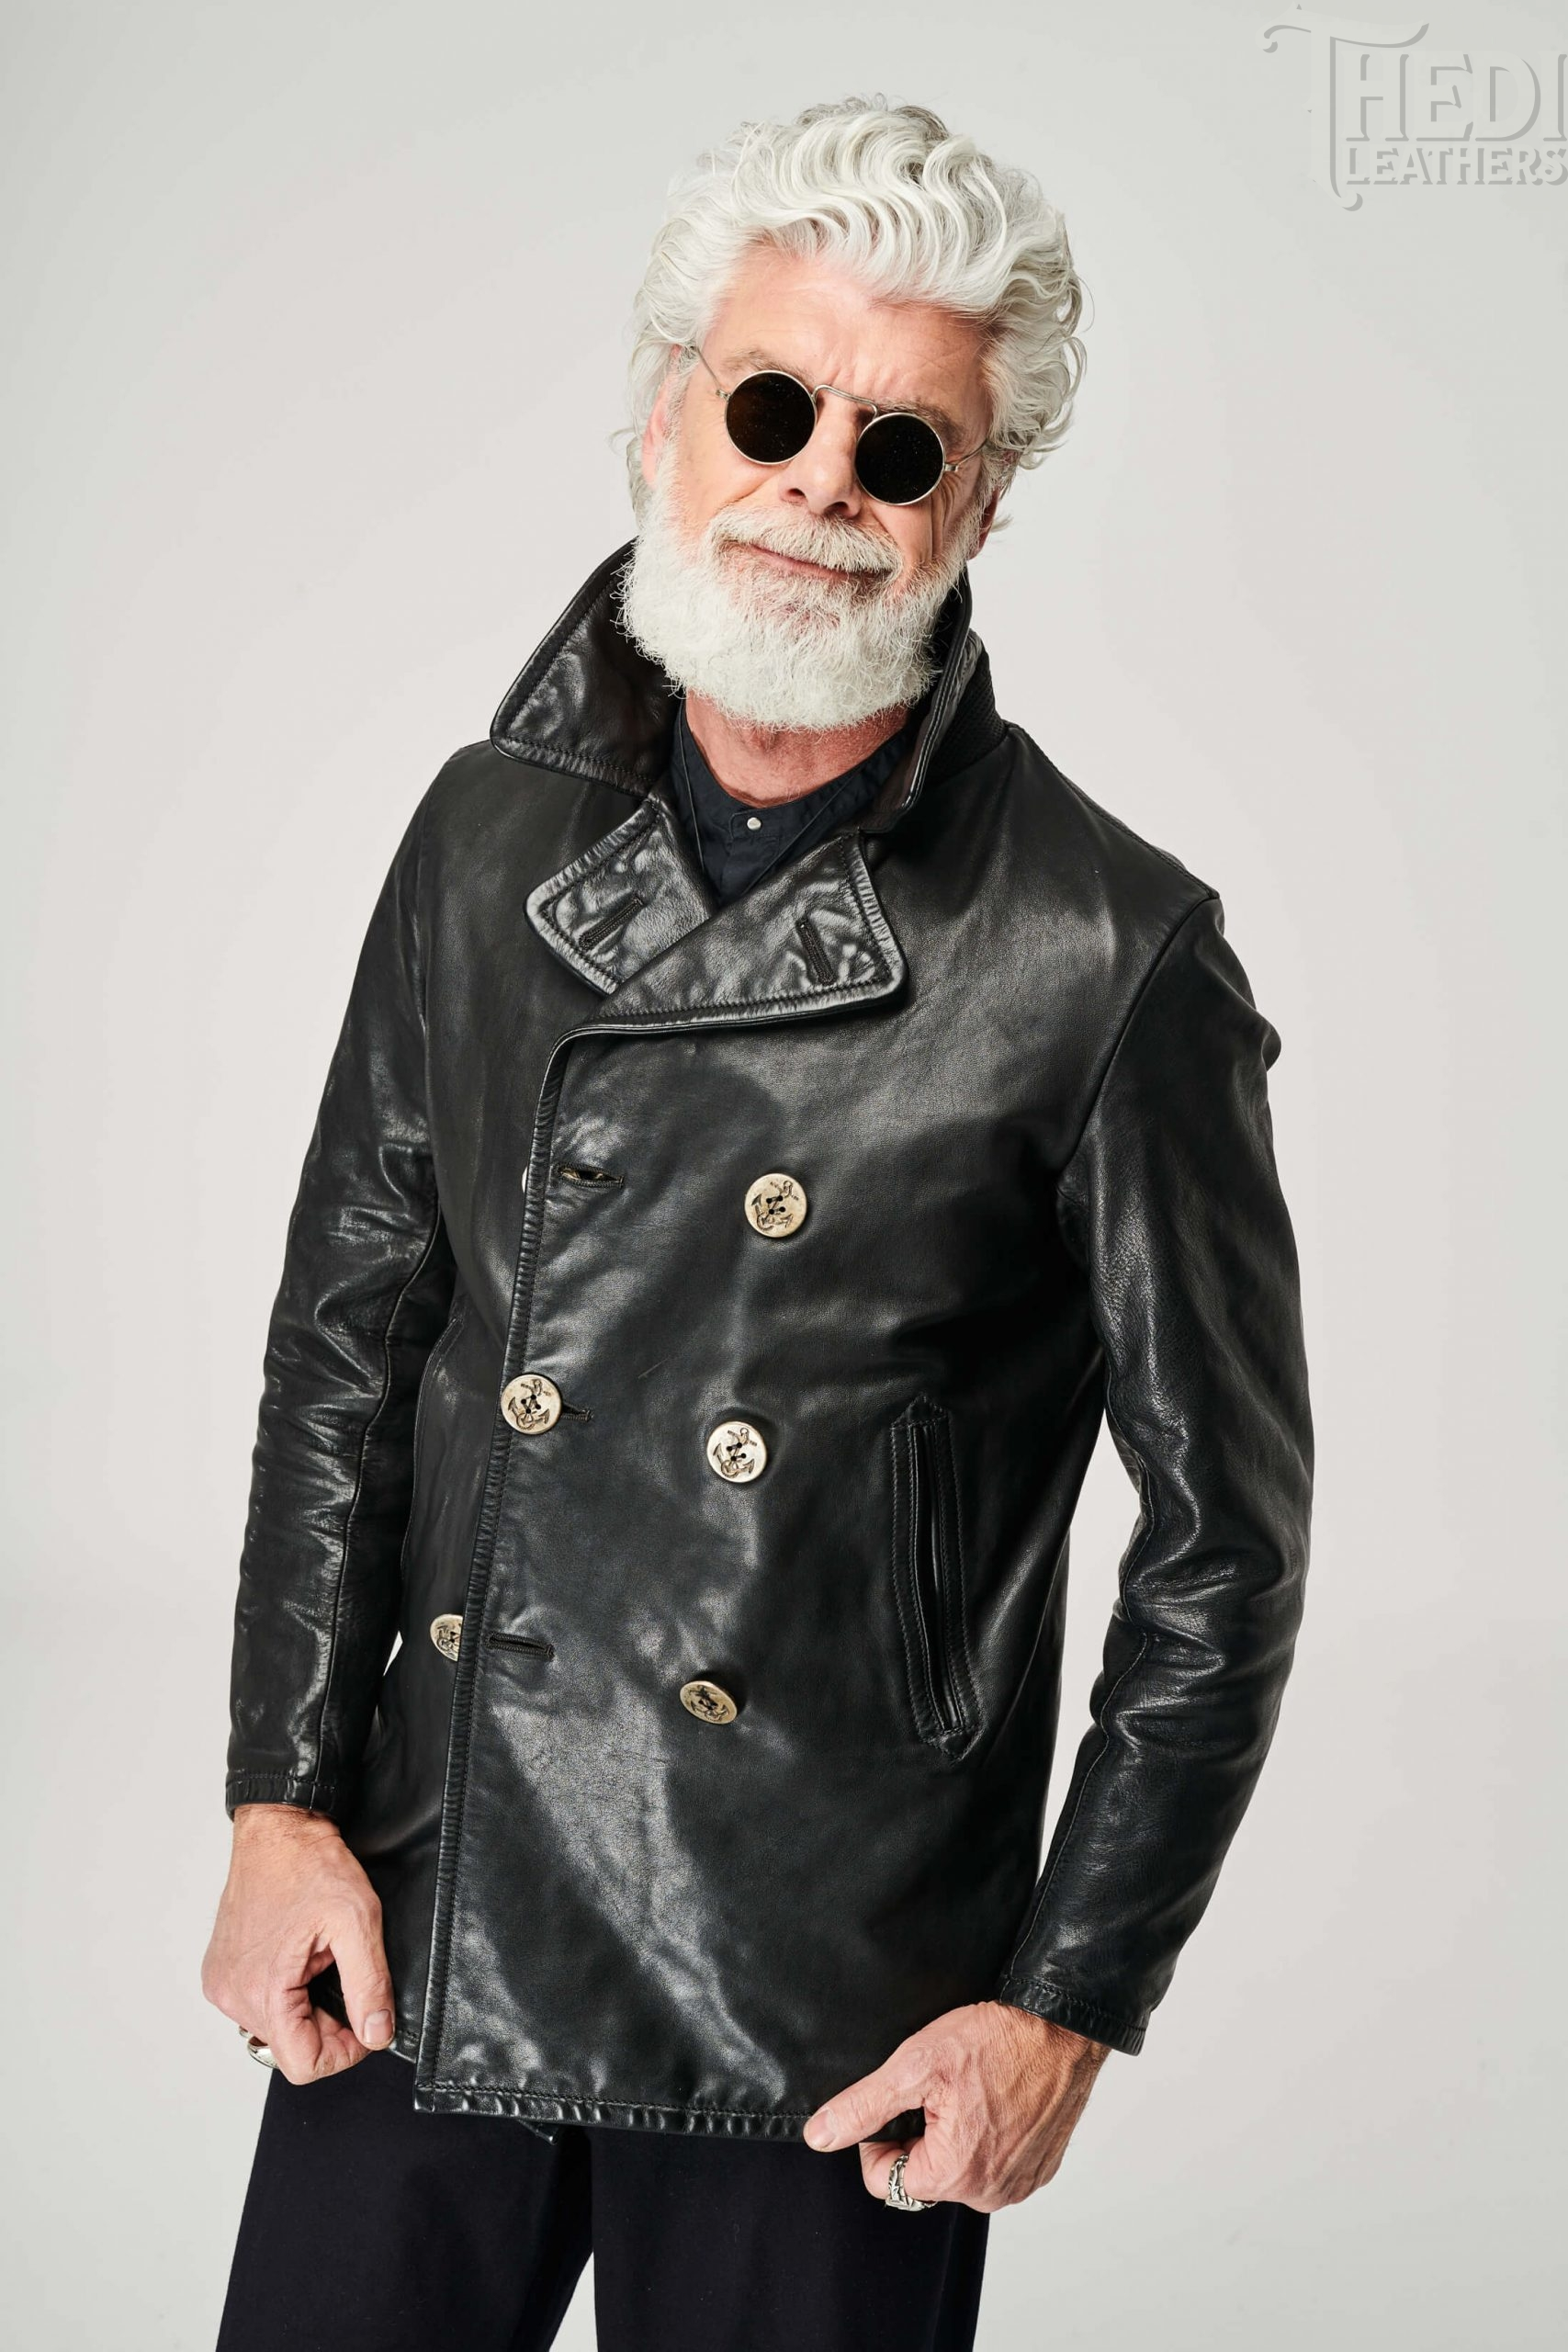 https://thedi-leathers.com/wp-content/uploads/2019/10/MTC-10087-FRONT-2-scaled.jpg